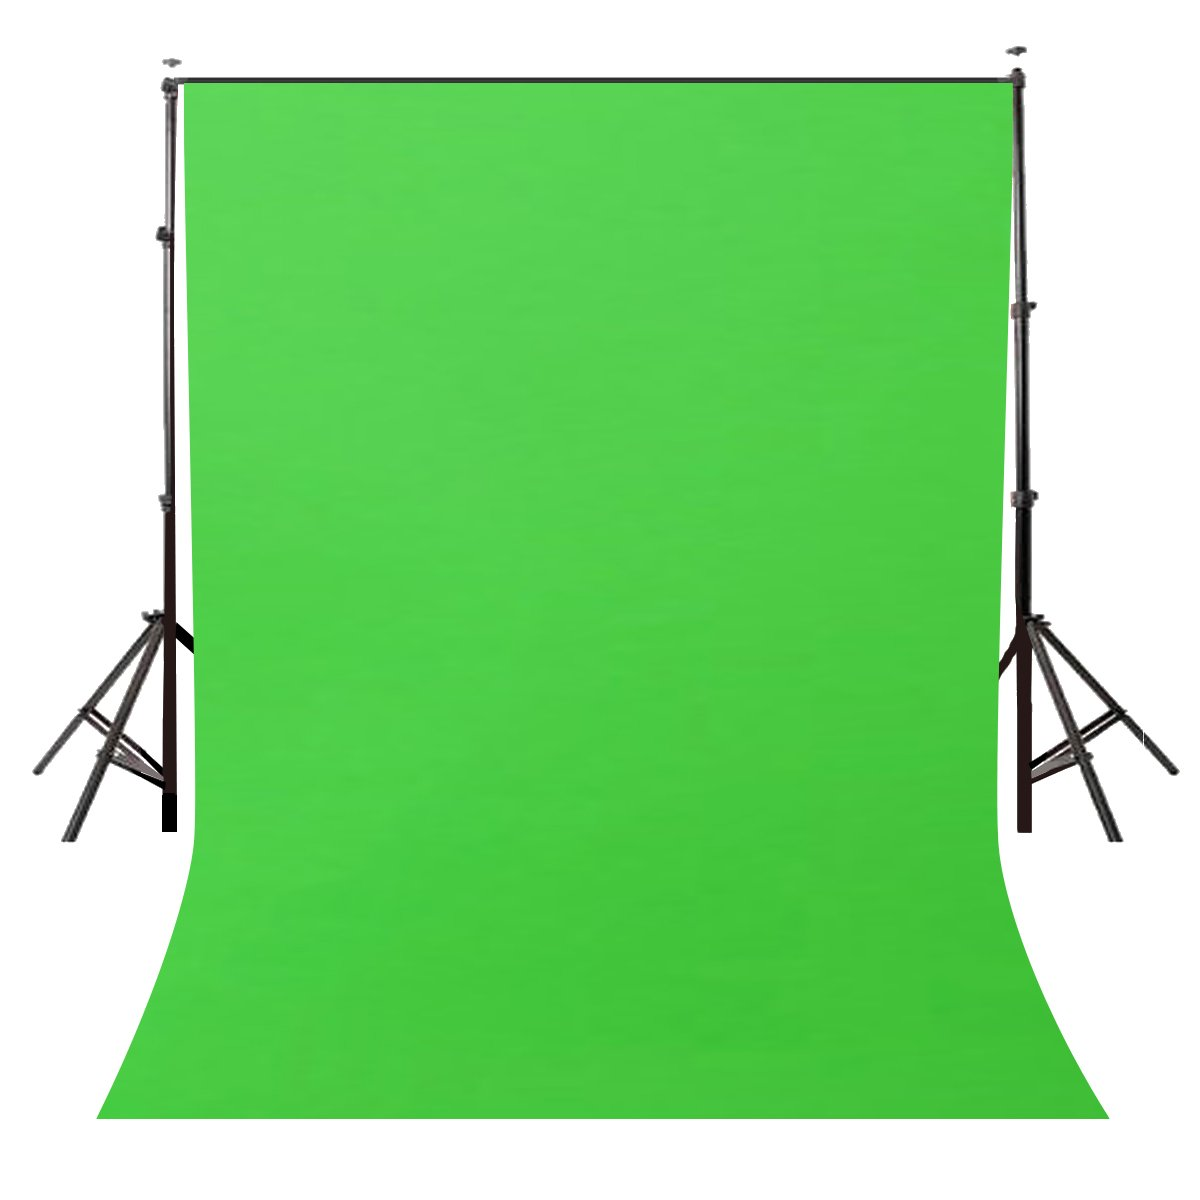 Details about Green Screen Background Chroma Key Photography Backdrop Photo  Video Studio Home